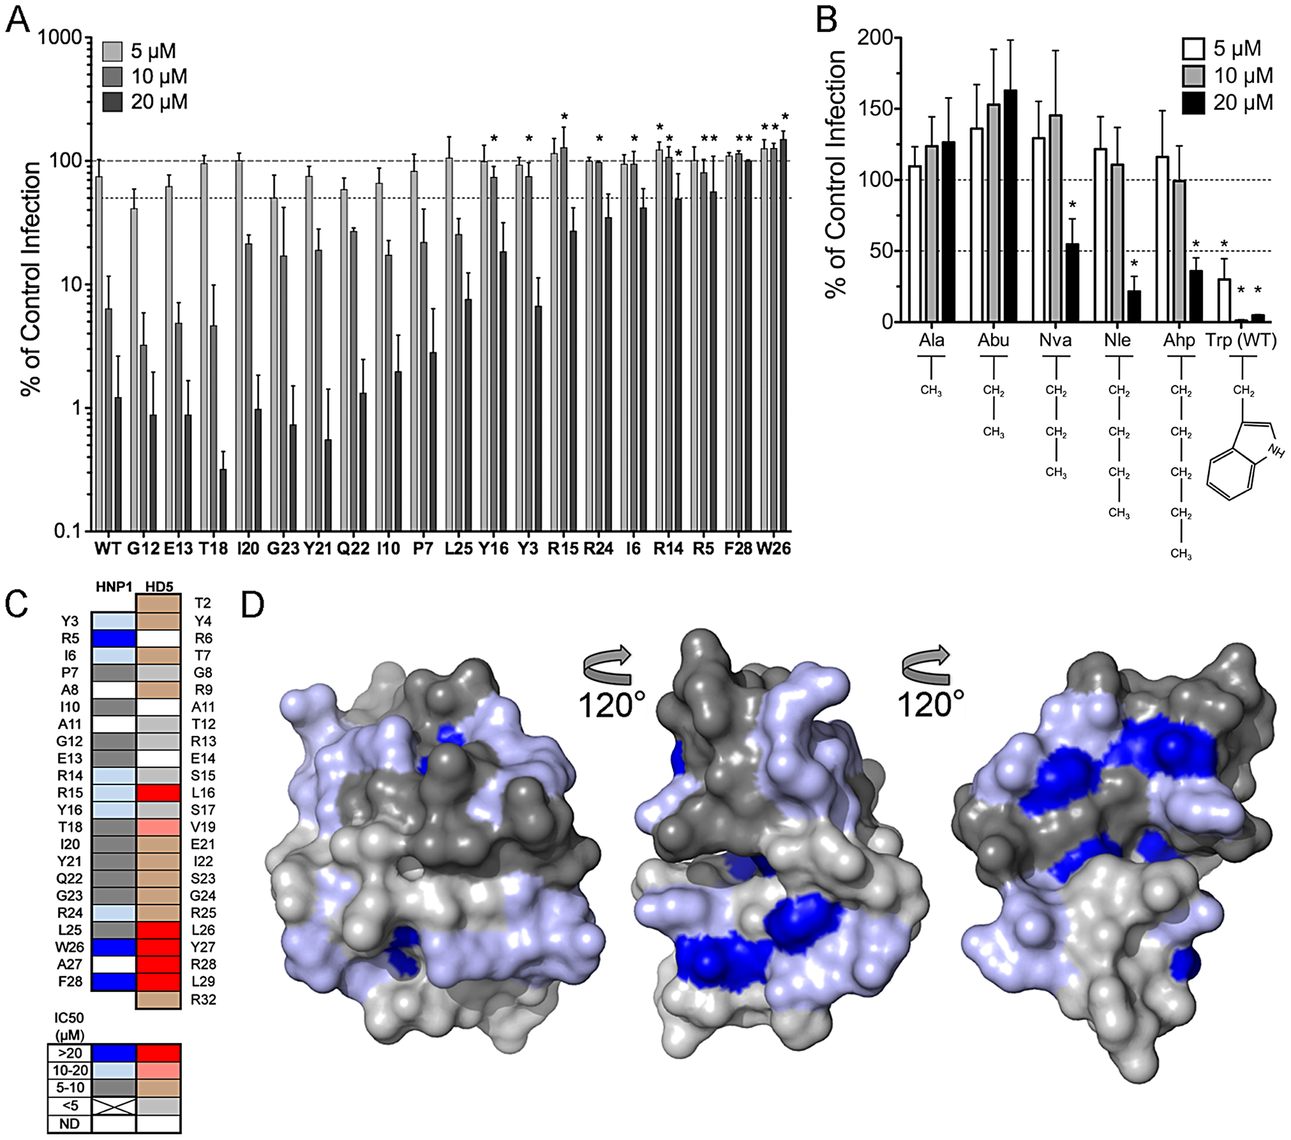 Anti-viral activity and model of HNP1 alanine scan mutants.